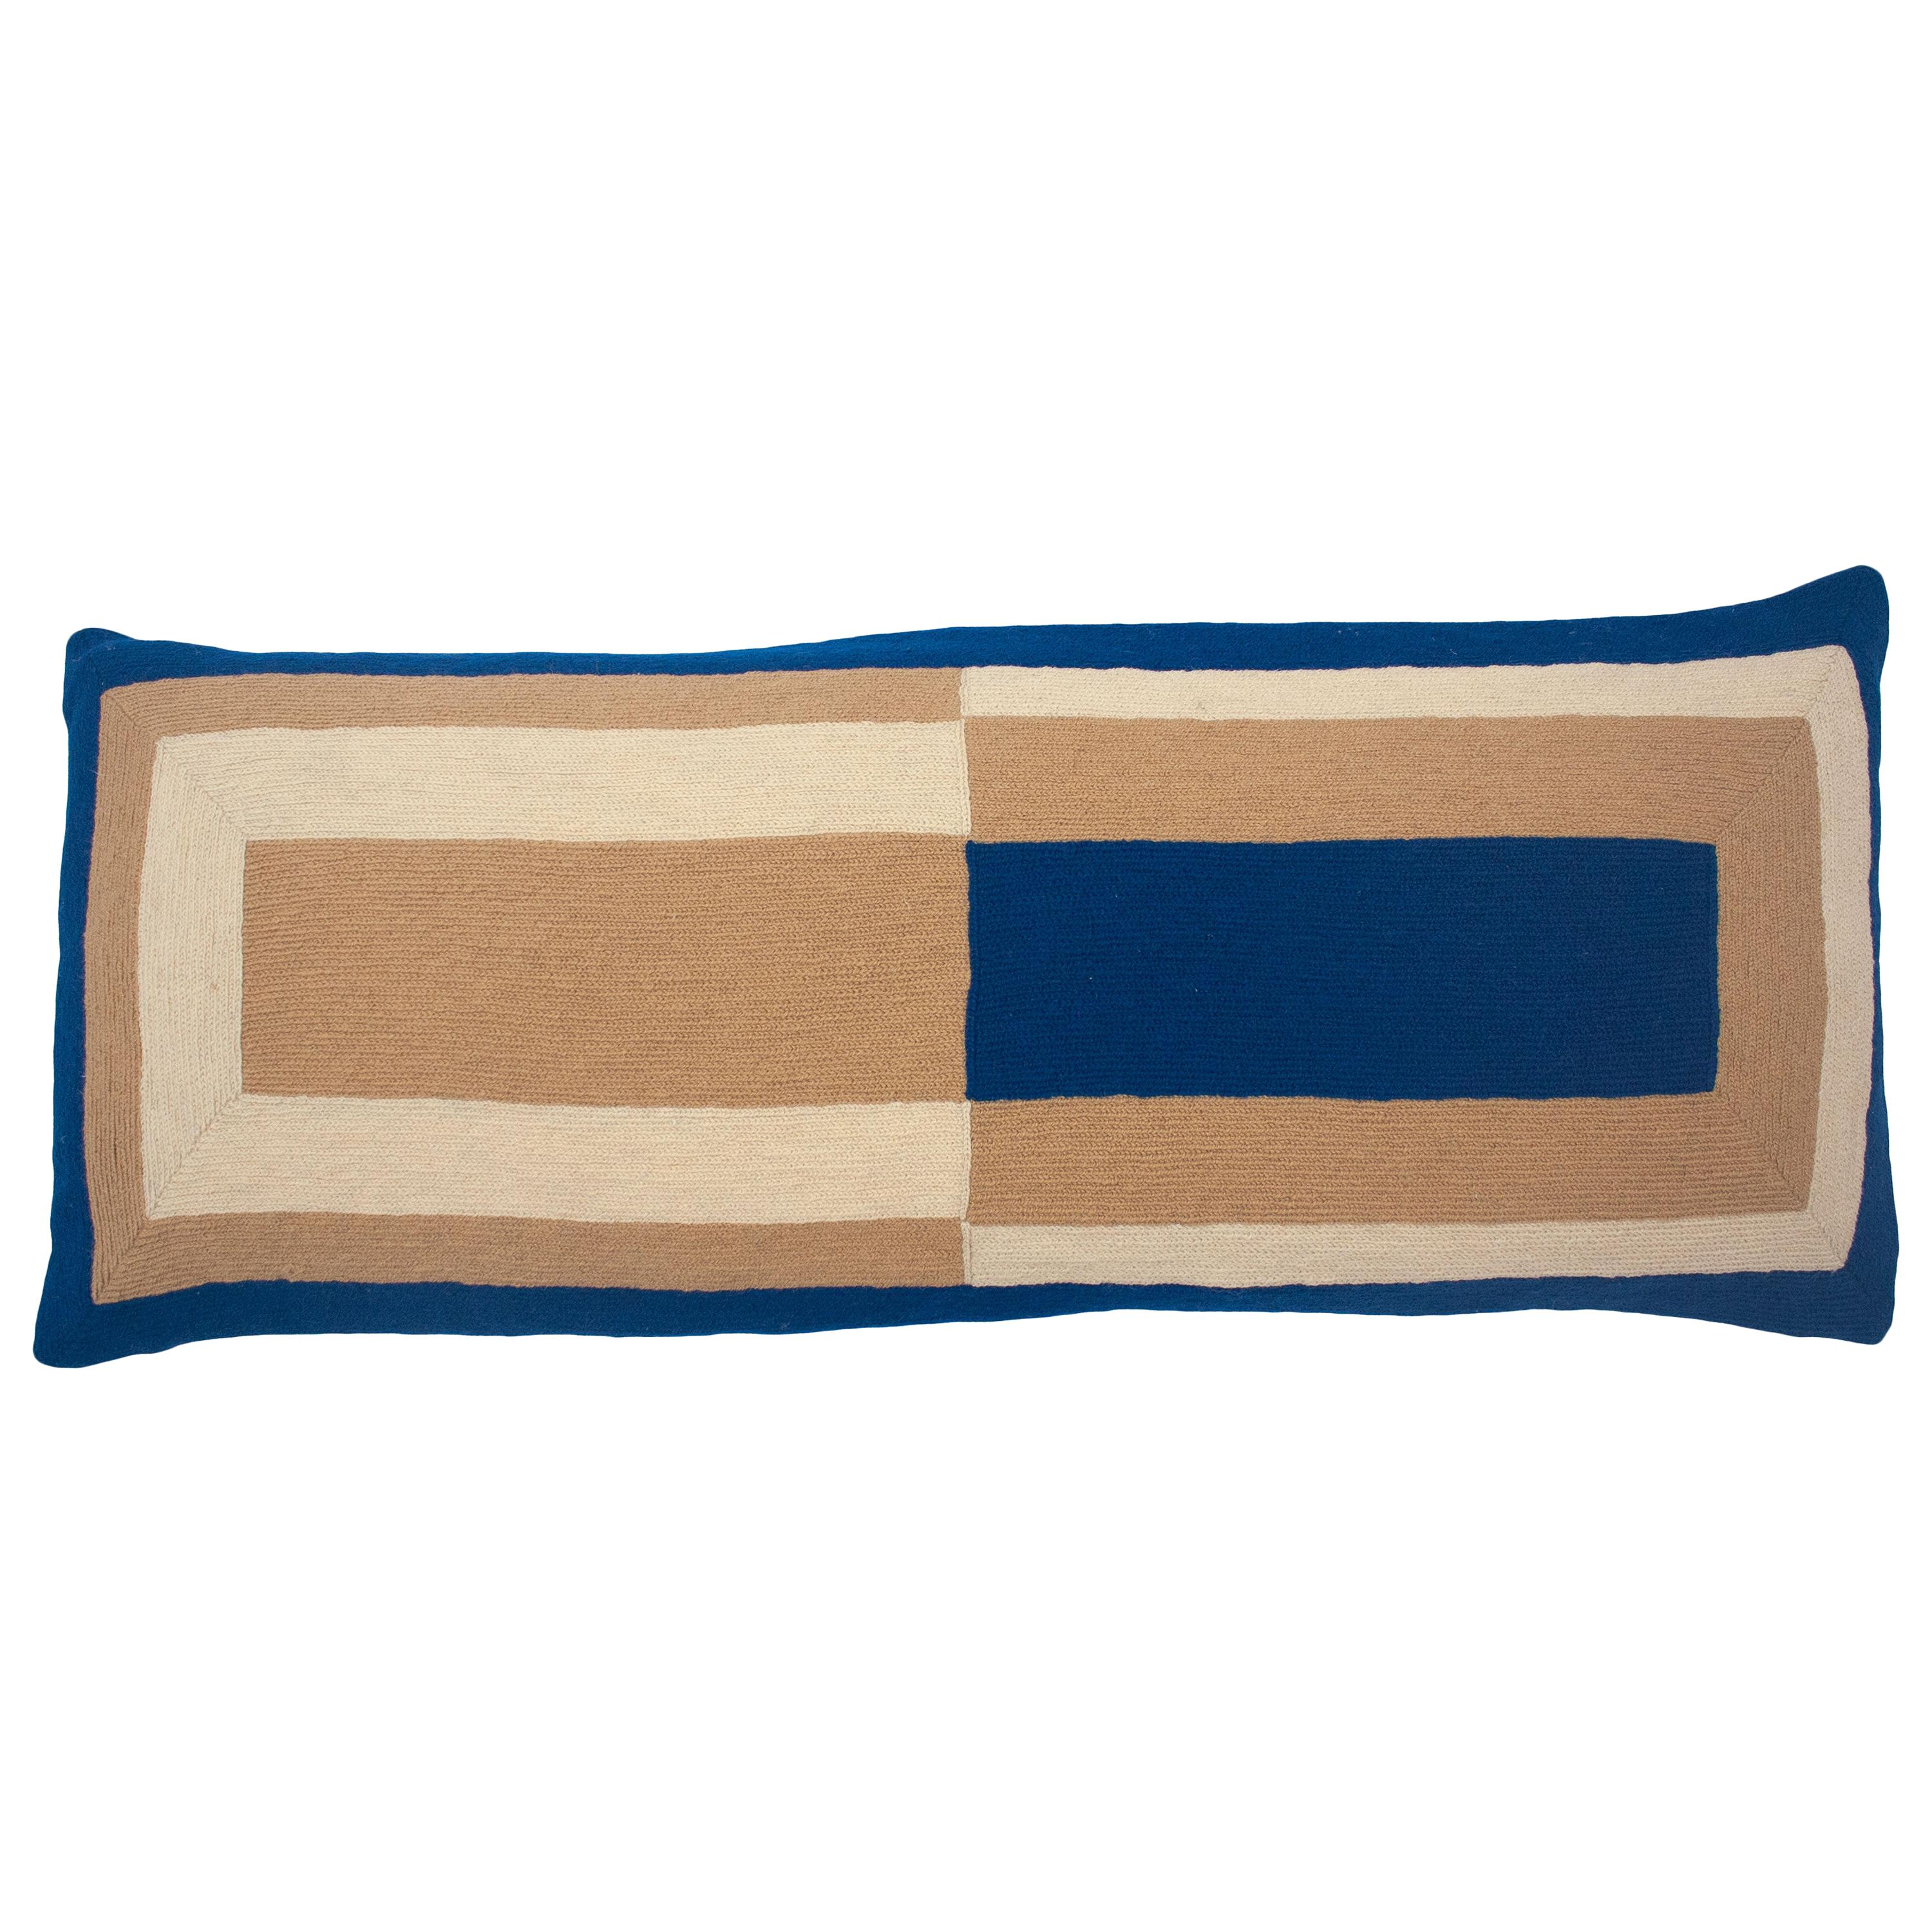 Marianne Rectangle Blue Hand Embroidered Modern Geometric Throw Pillow Cover